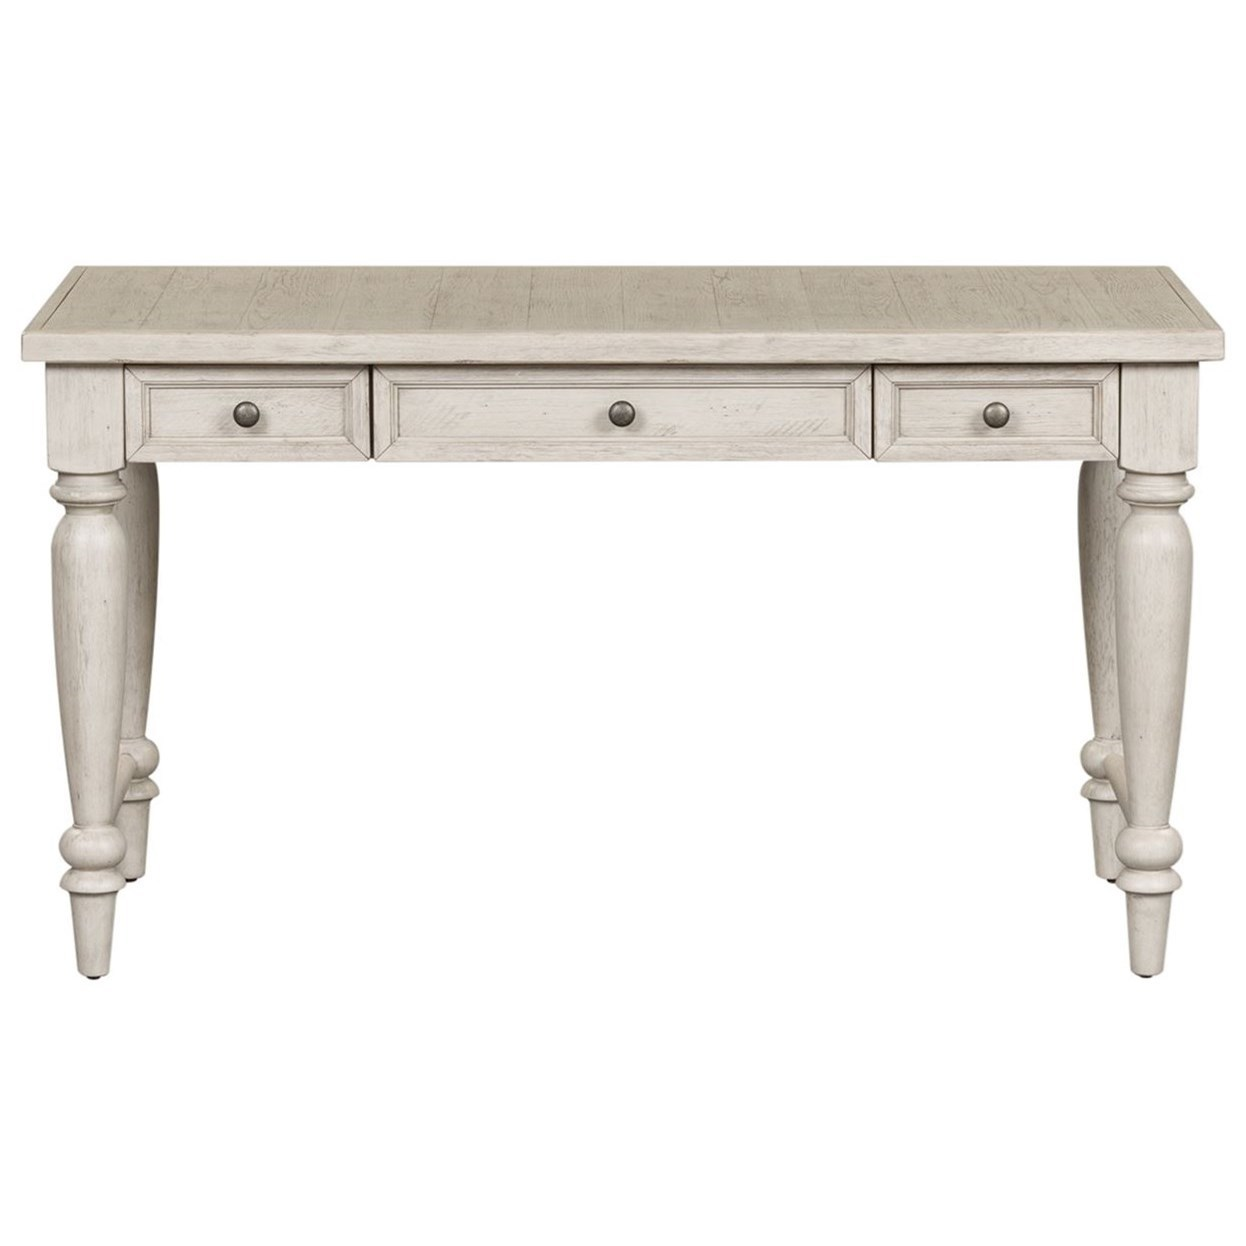 Harvest Home Writing Desk by Liberty Furniture at Godby Home Furnishings